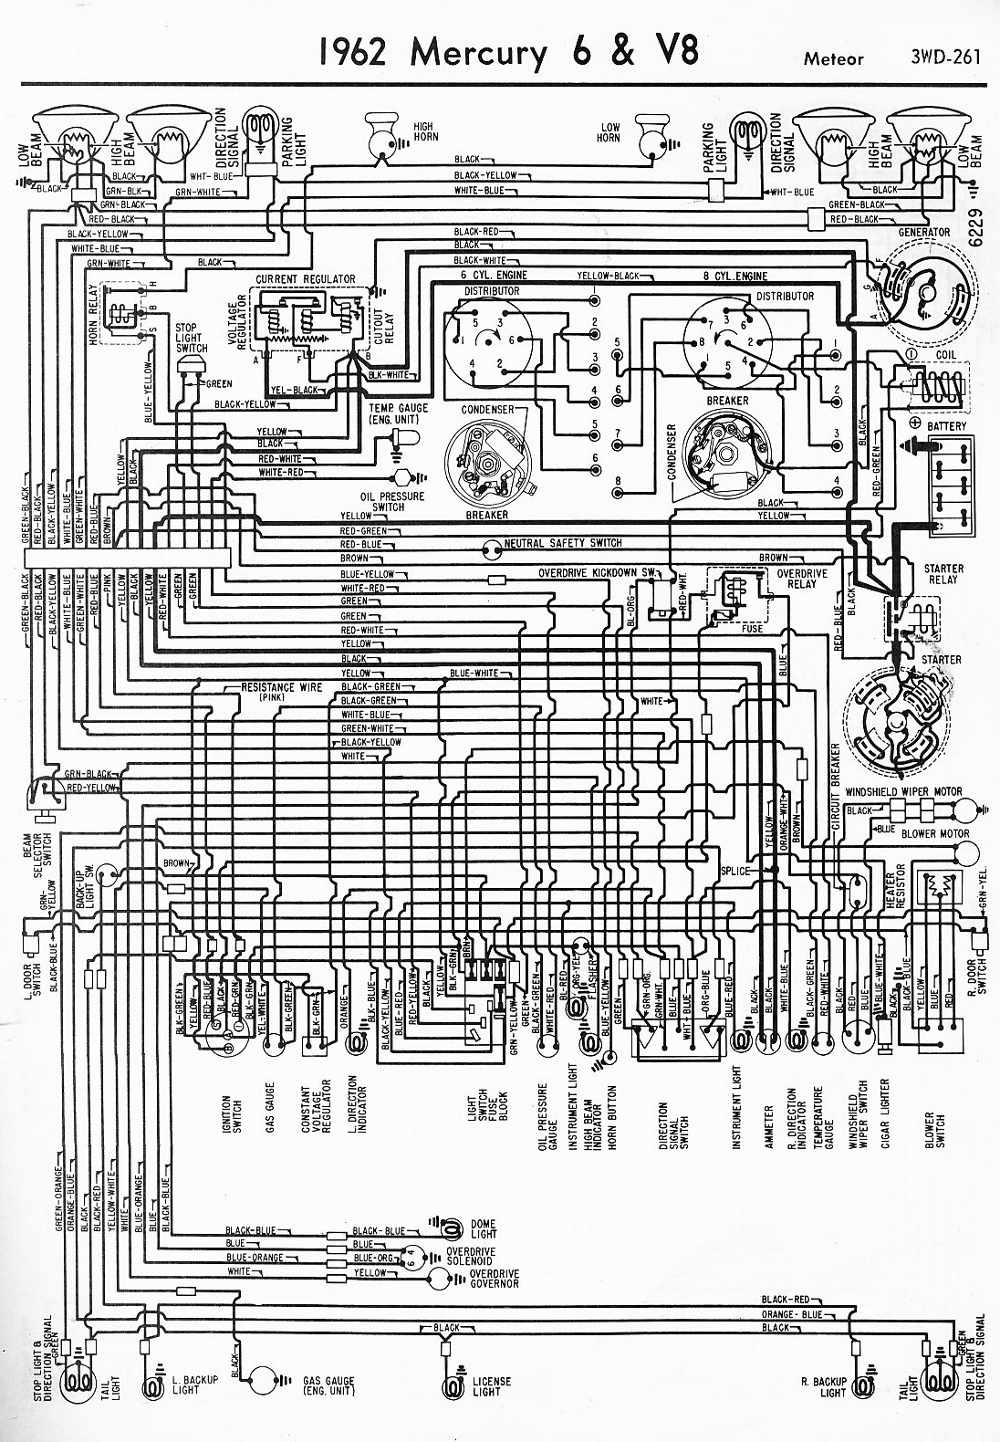 wiring diagrams 911 2011 1962 mercury 6 and v8 meteor wiring diagram